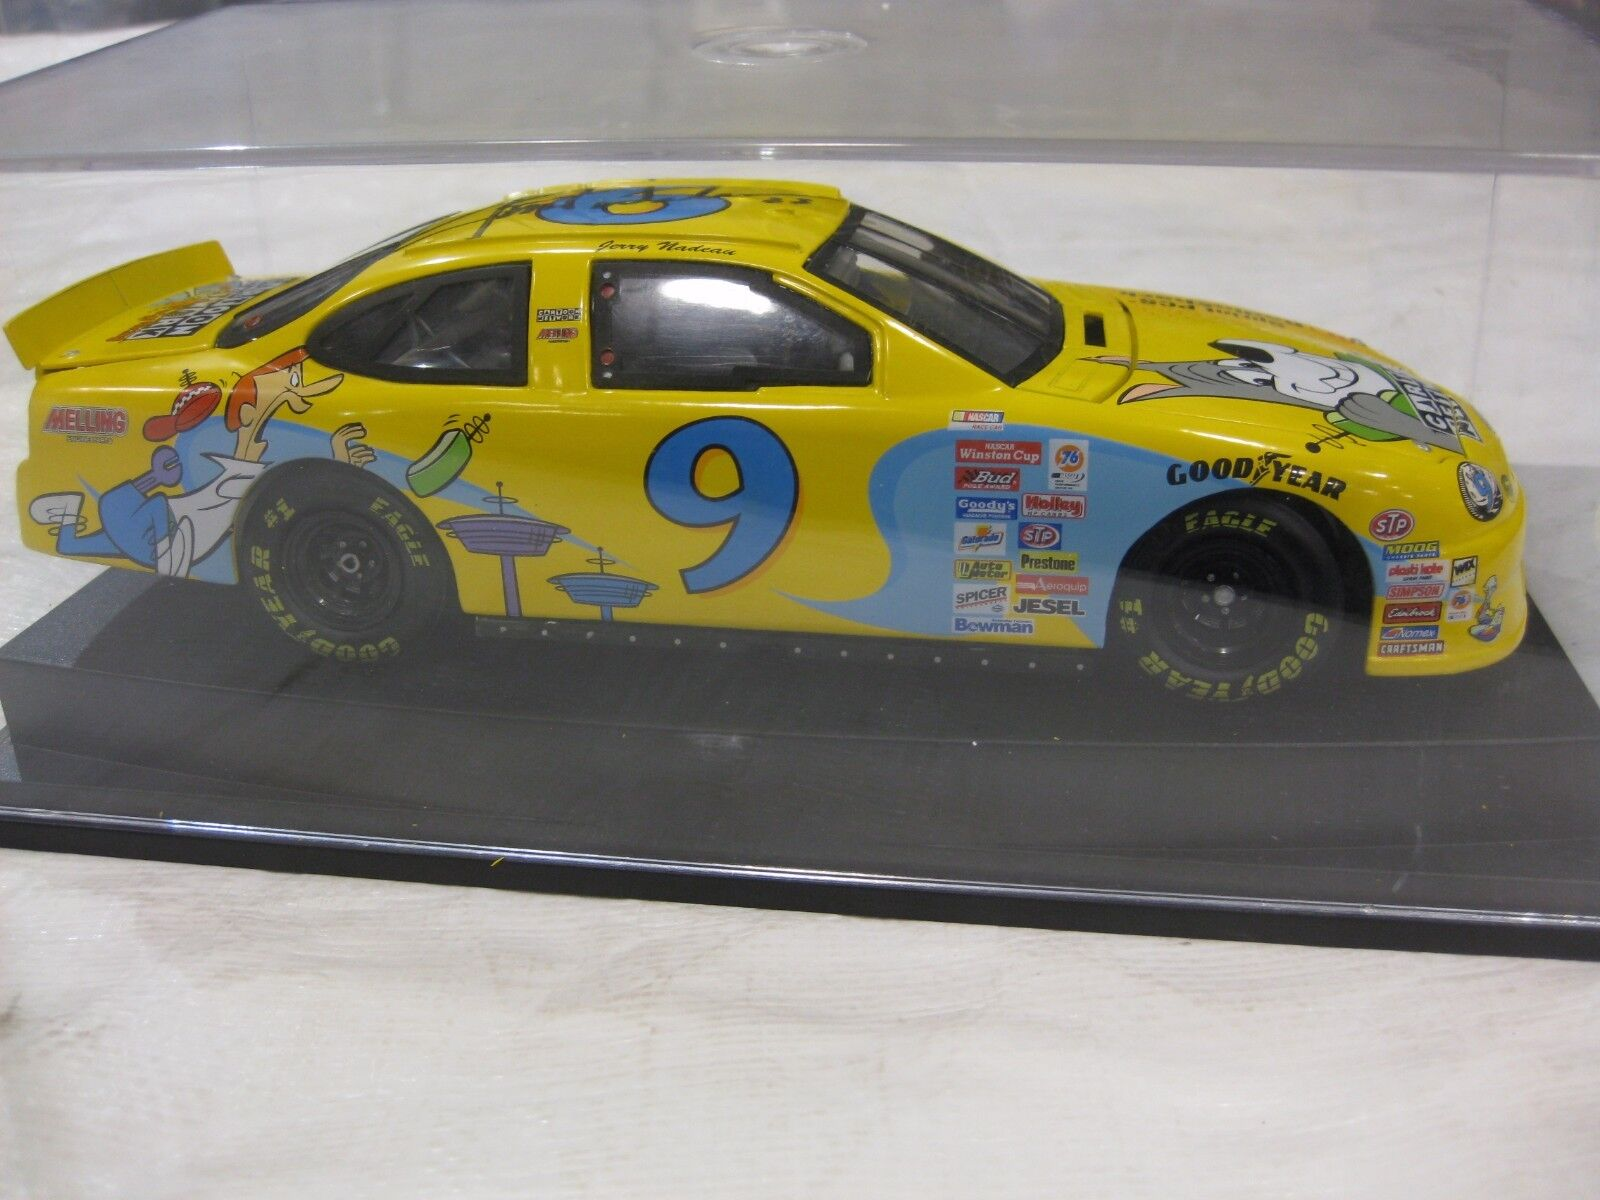 NASCAR  9 Jerry Nadeau signé Cartoon Network Taurus 1 24 Scale Diecast REVELL